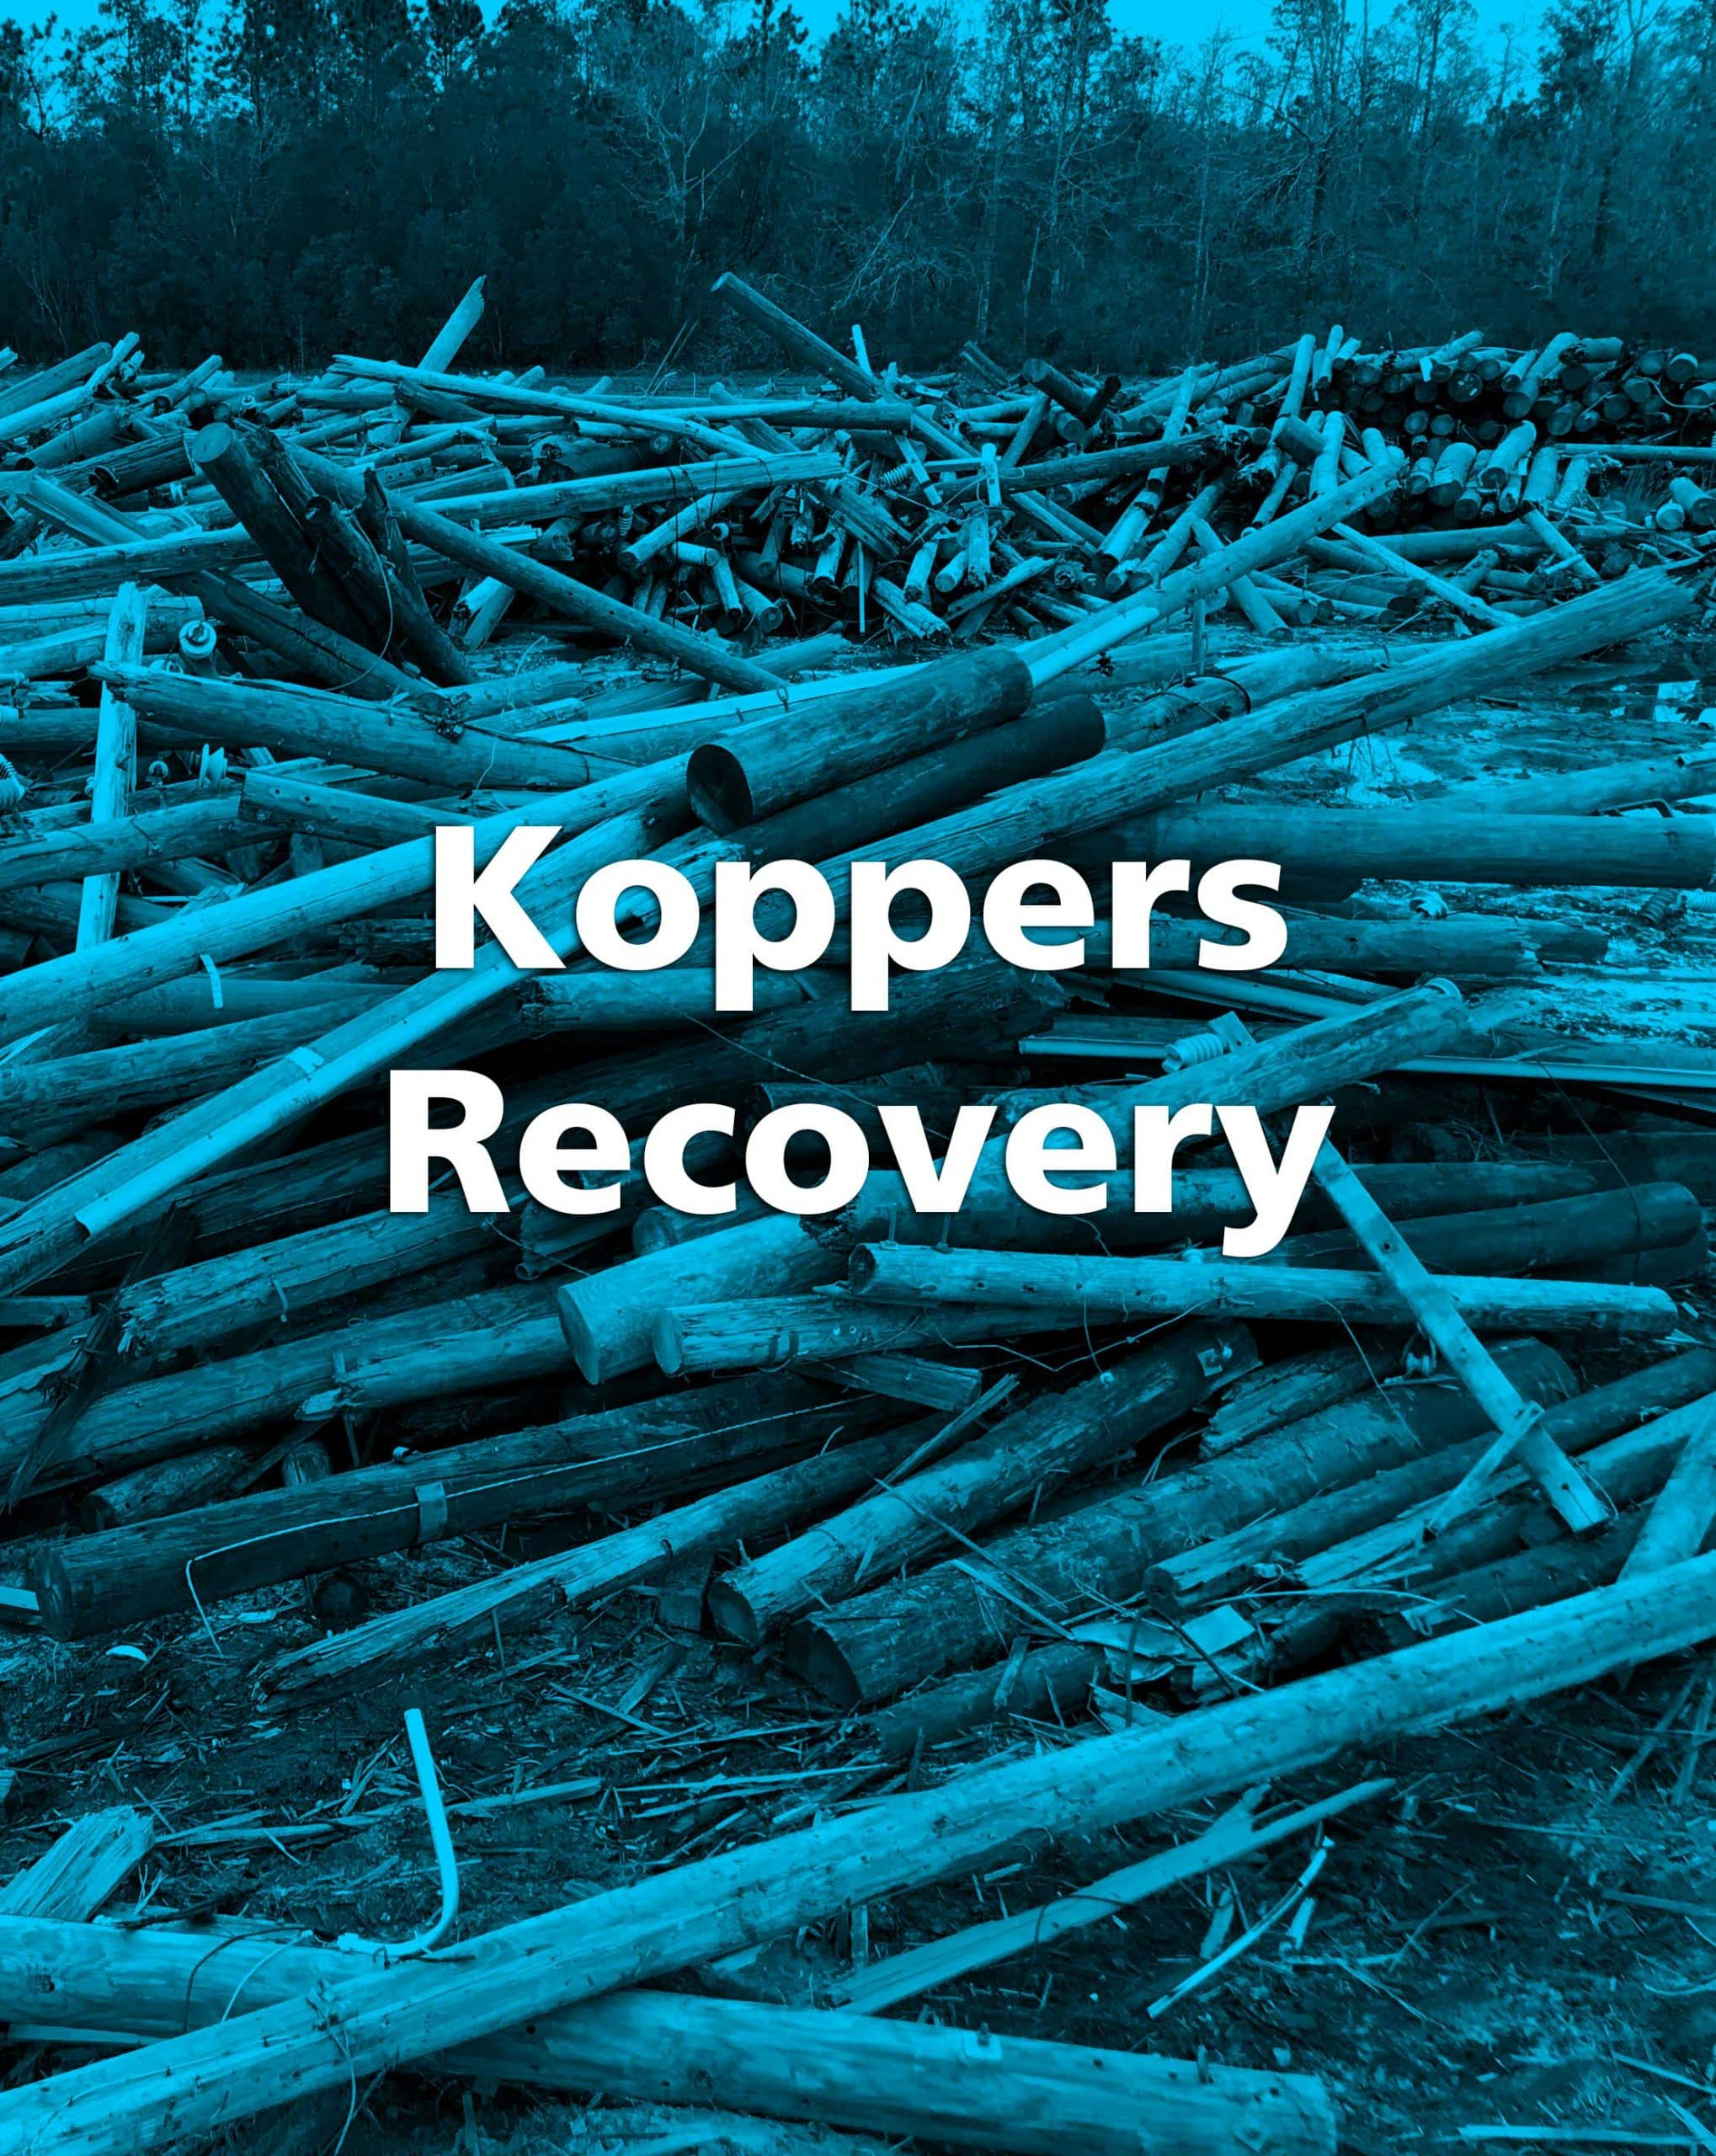 Koppers Recovery Brochure